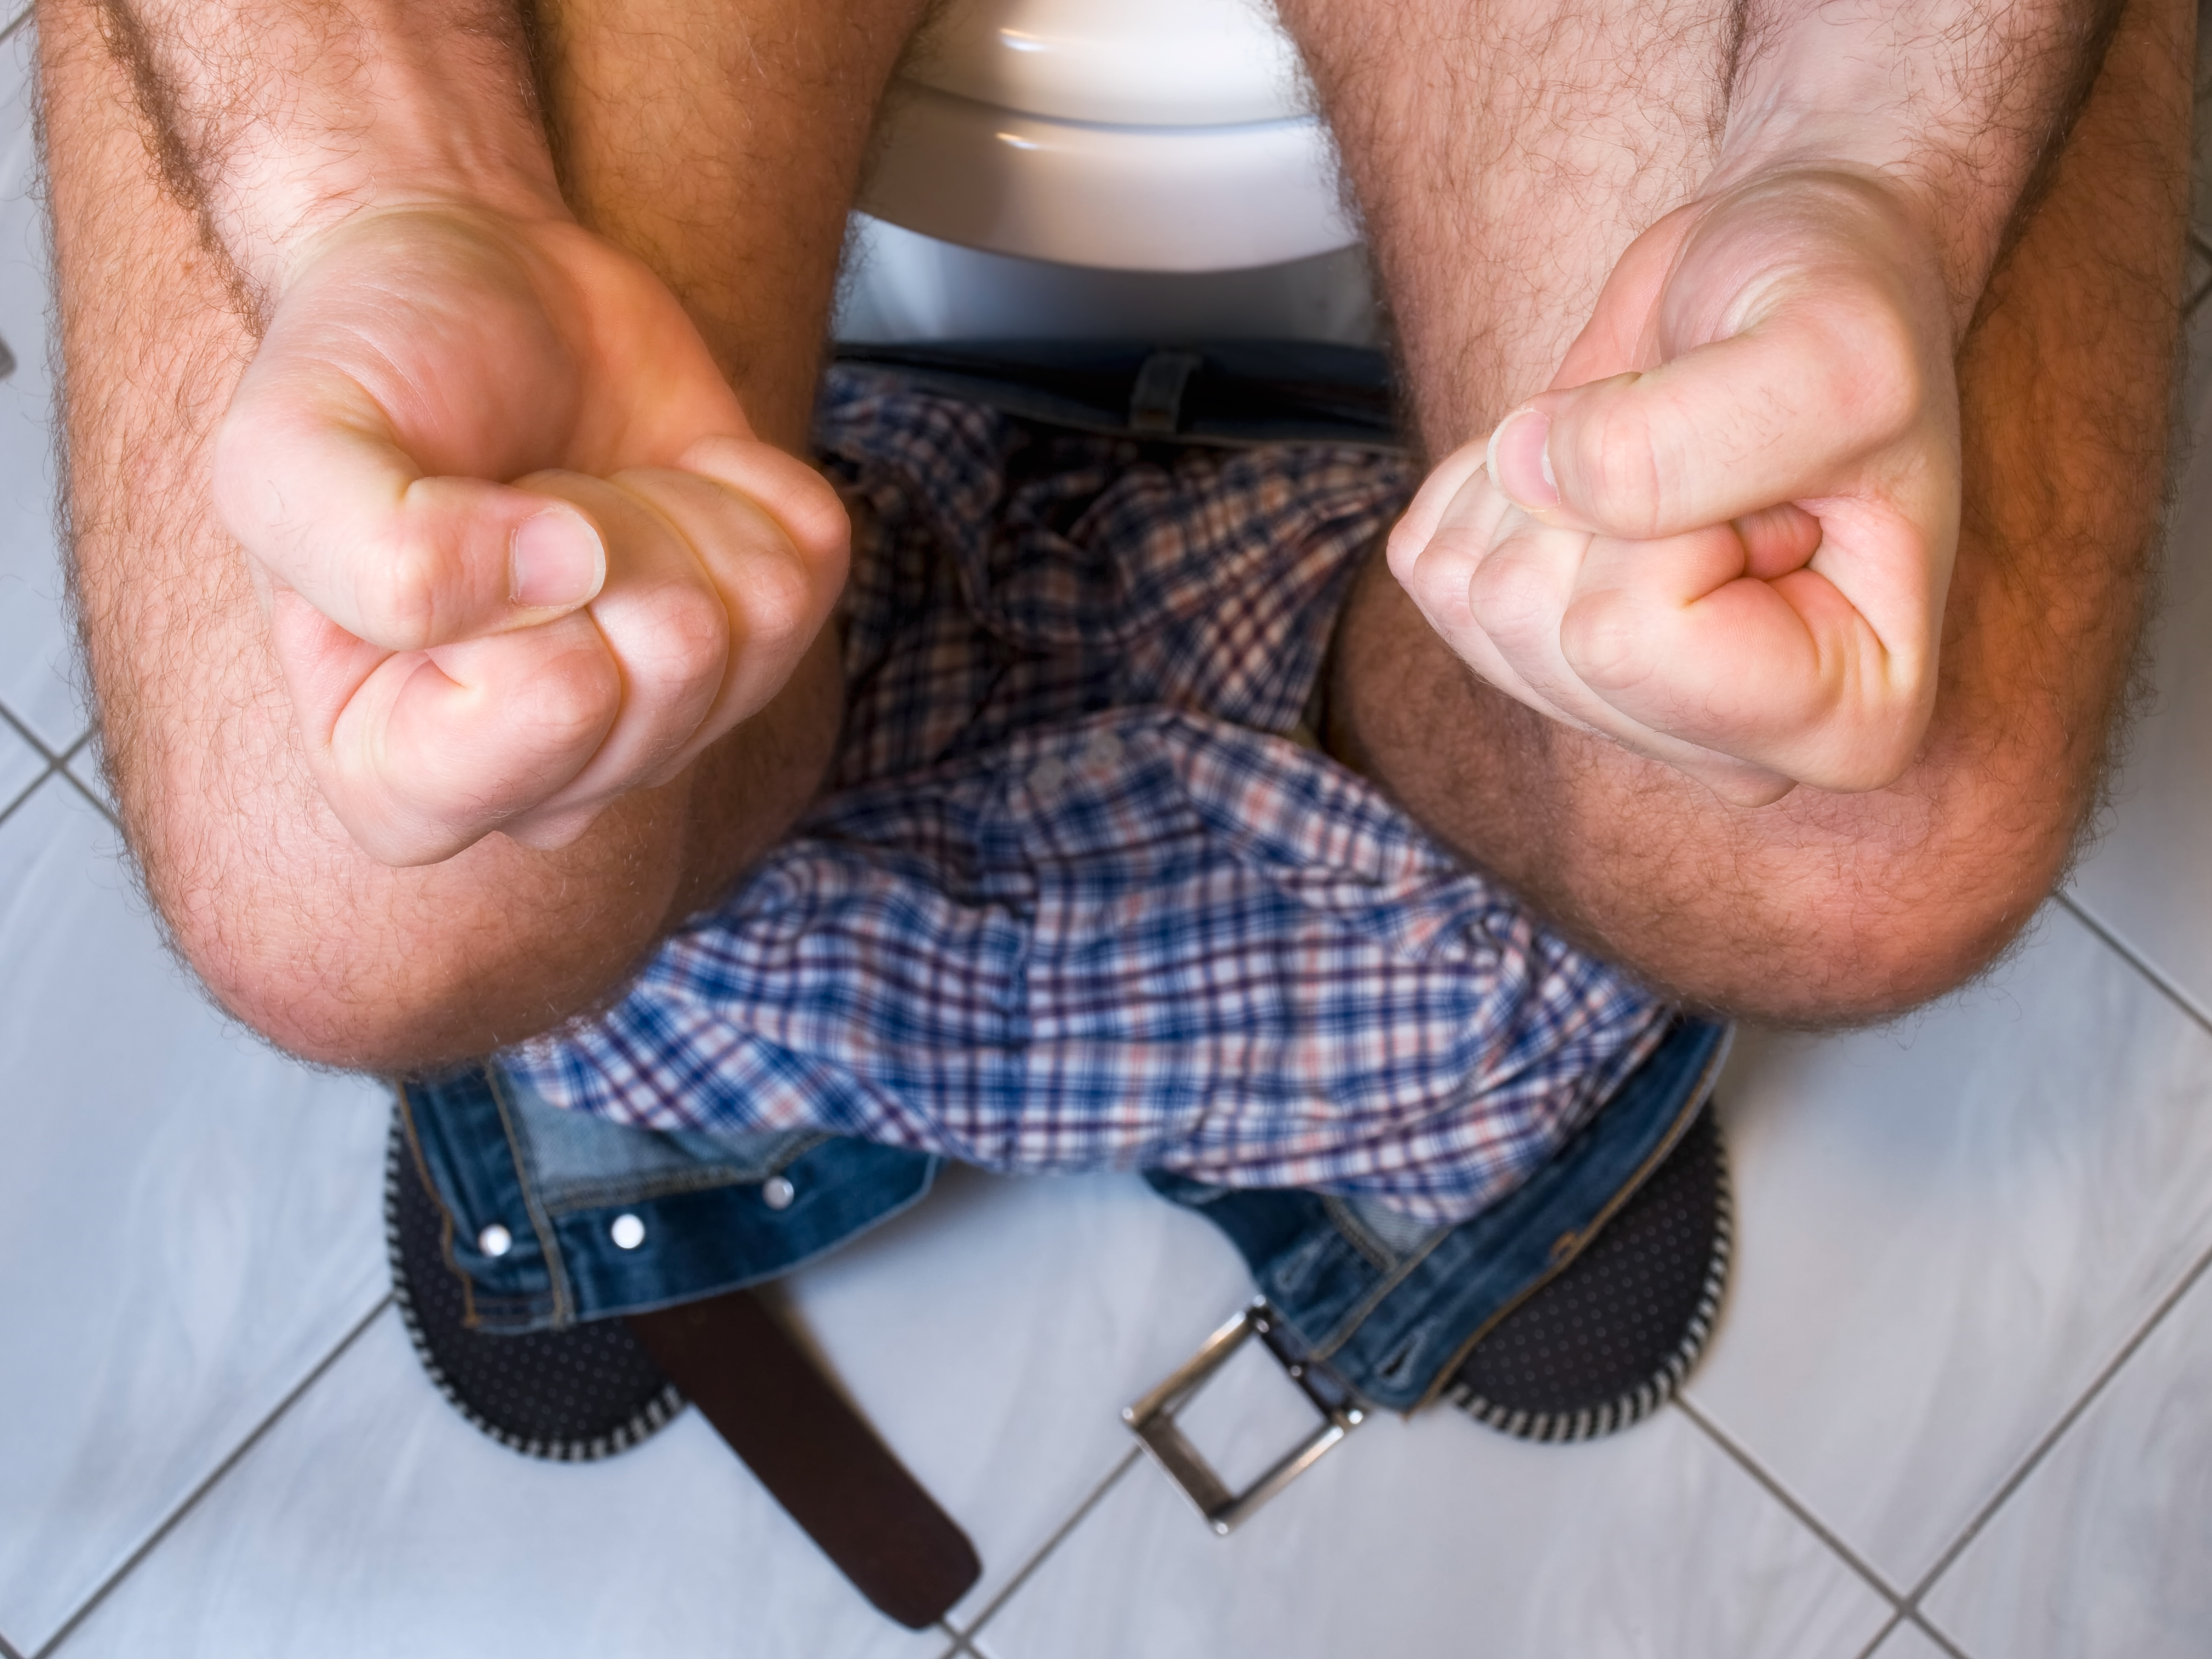 What to do if constipation is longer than 2 days 14